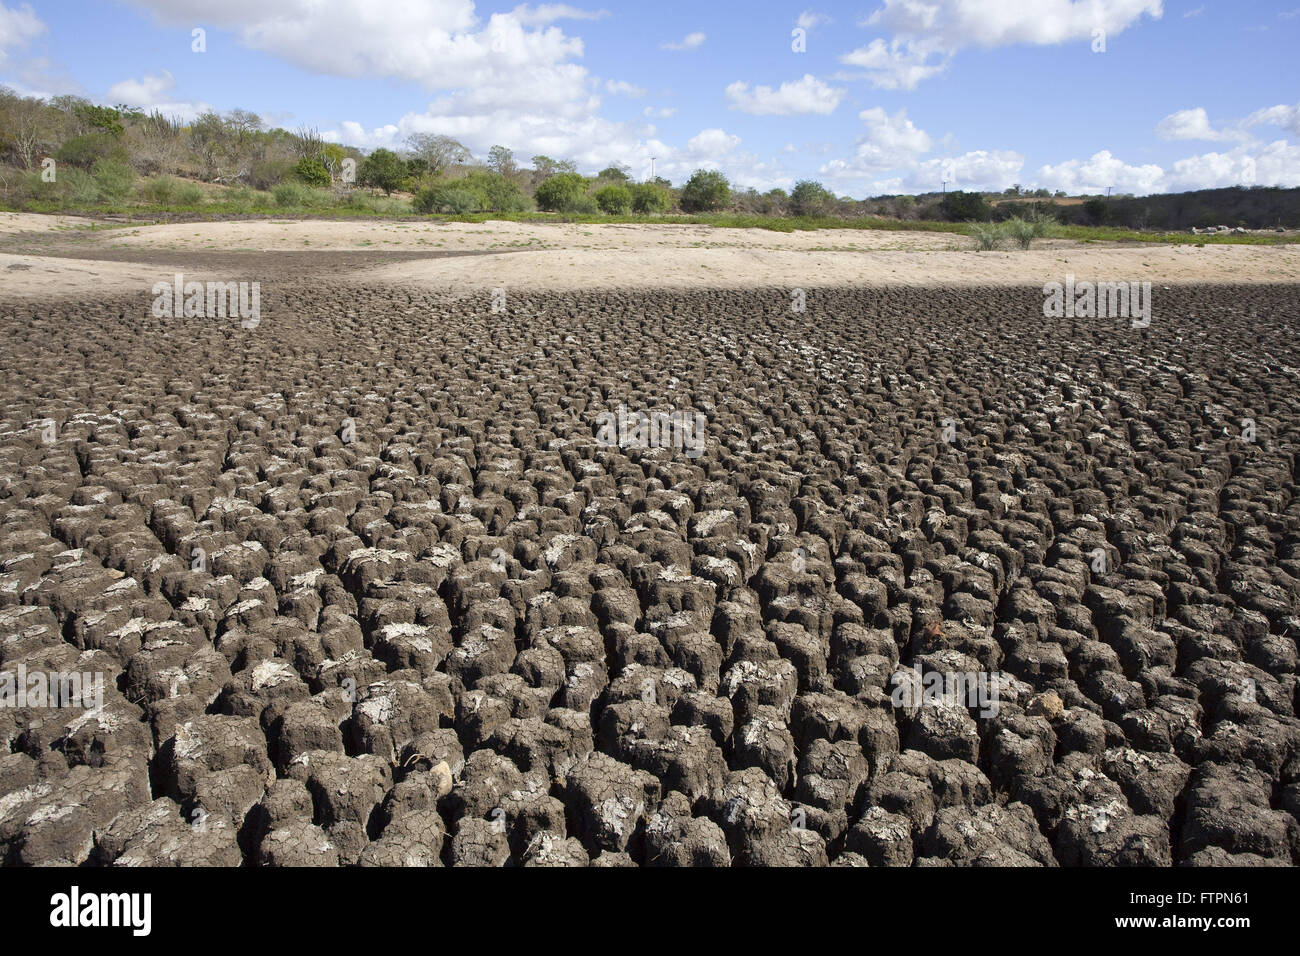 Details riverbed cow head - dry due to drought - Stock Image